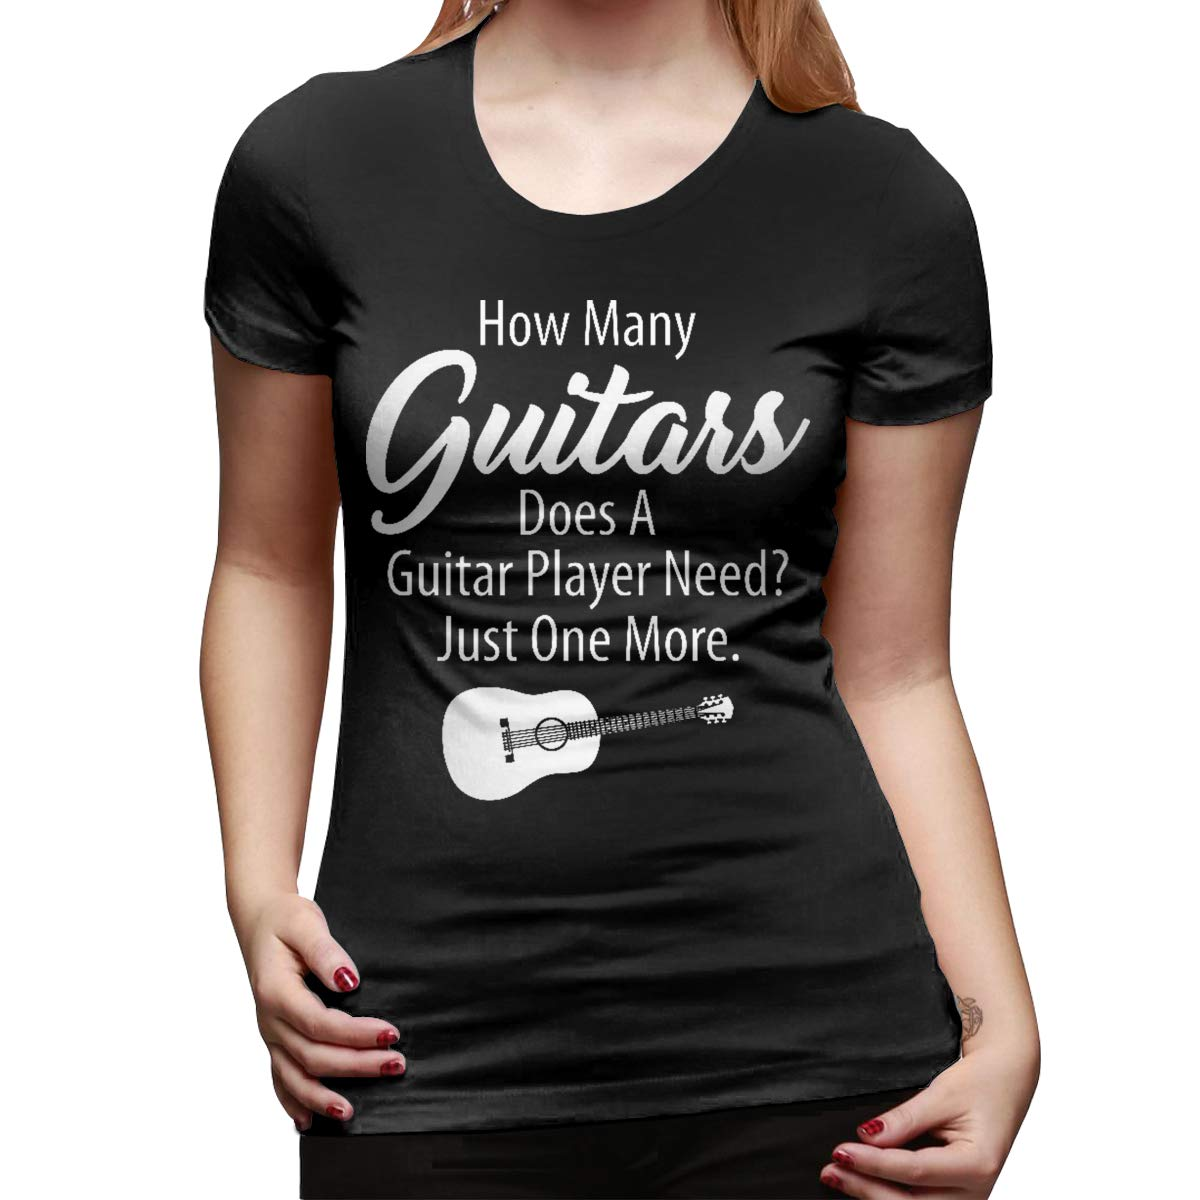 How Many Guitars Does A Guitar Player Need Sport Short Sleeves Shirts